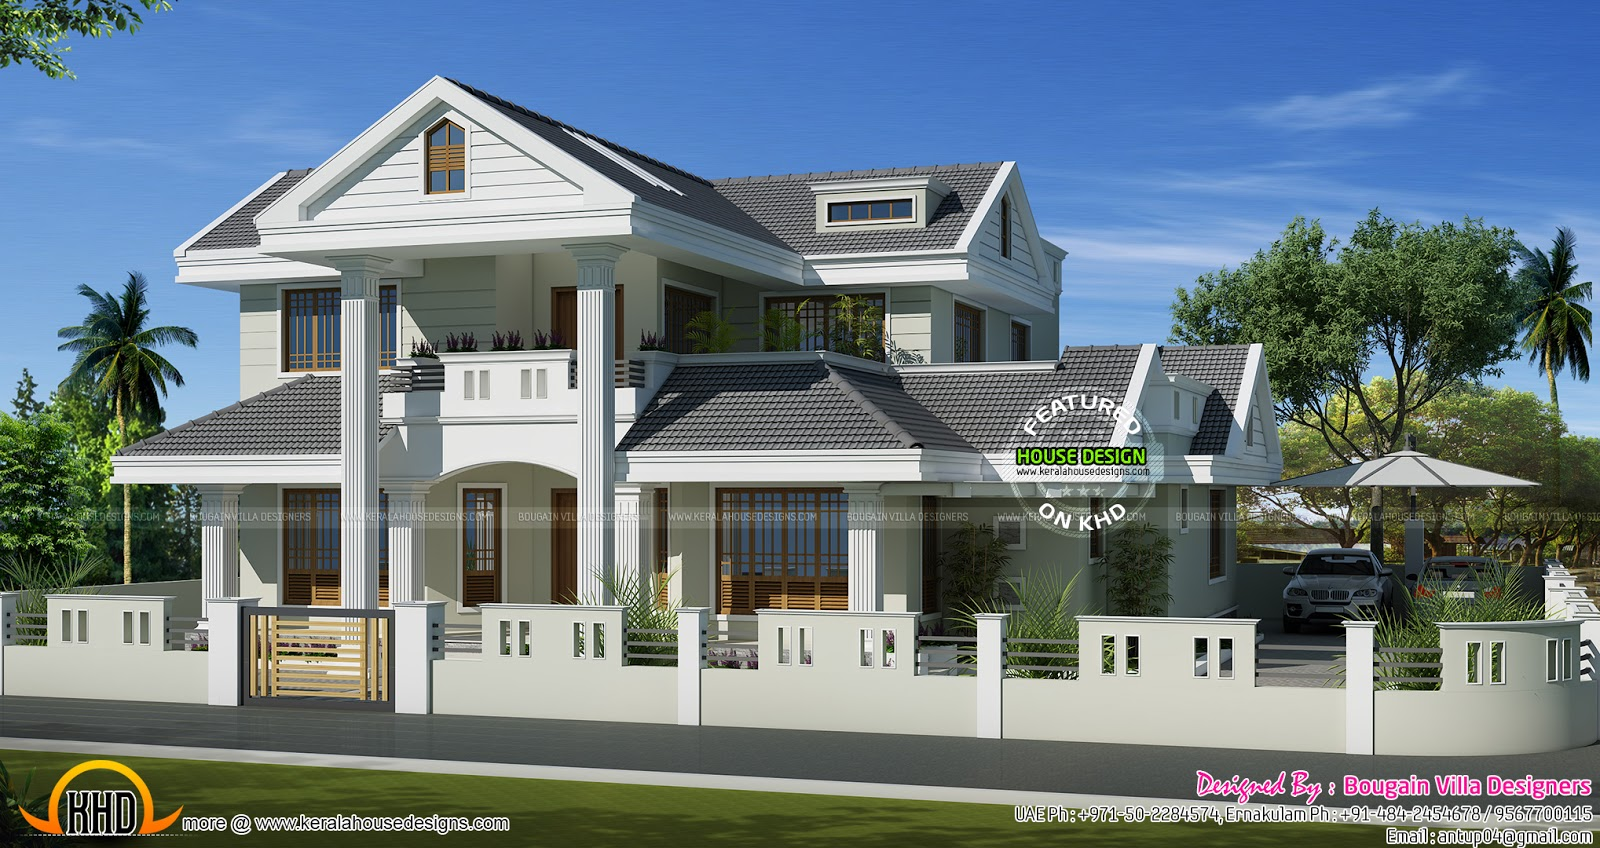 Beautiful villa in 2500 sq feet kerala home design and Model plans for house